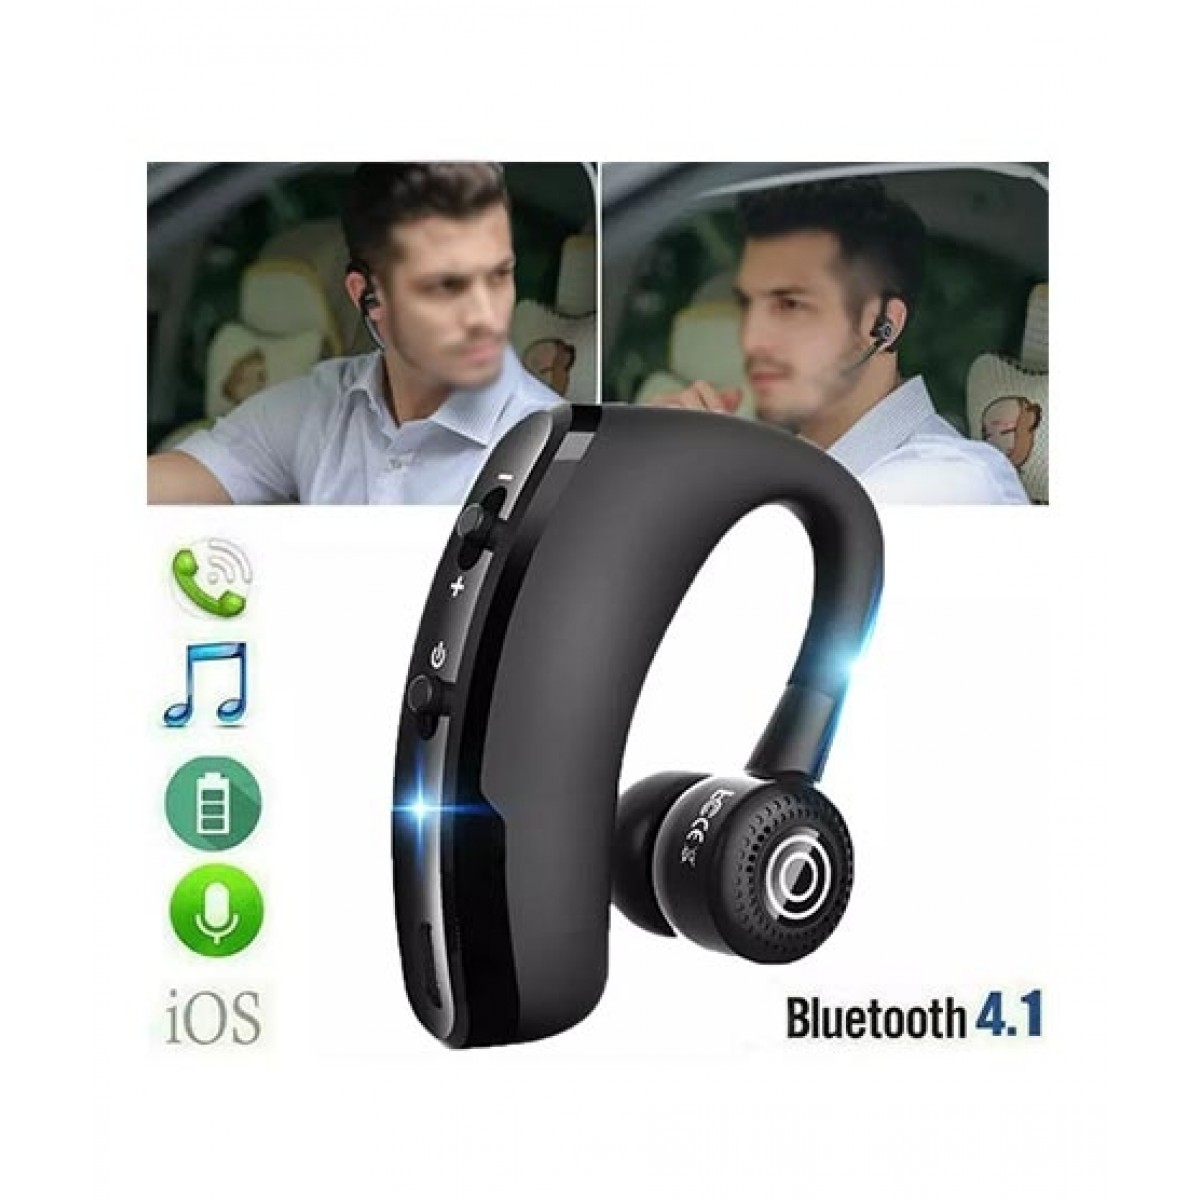 V9 Wireless Bluetooth Headset Black Price In Pakistan Buy Apkastore V9 Wireless Bluetooth Headset Ishopping Pk